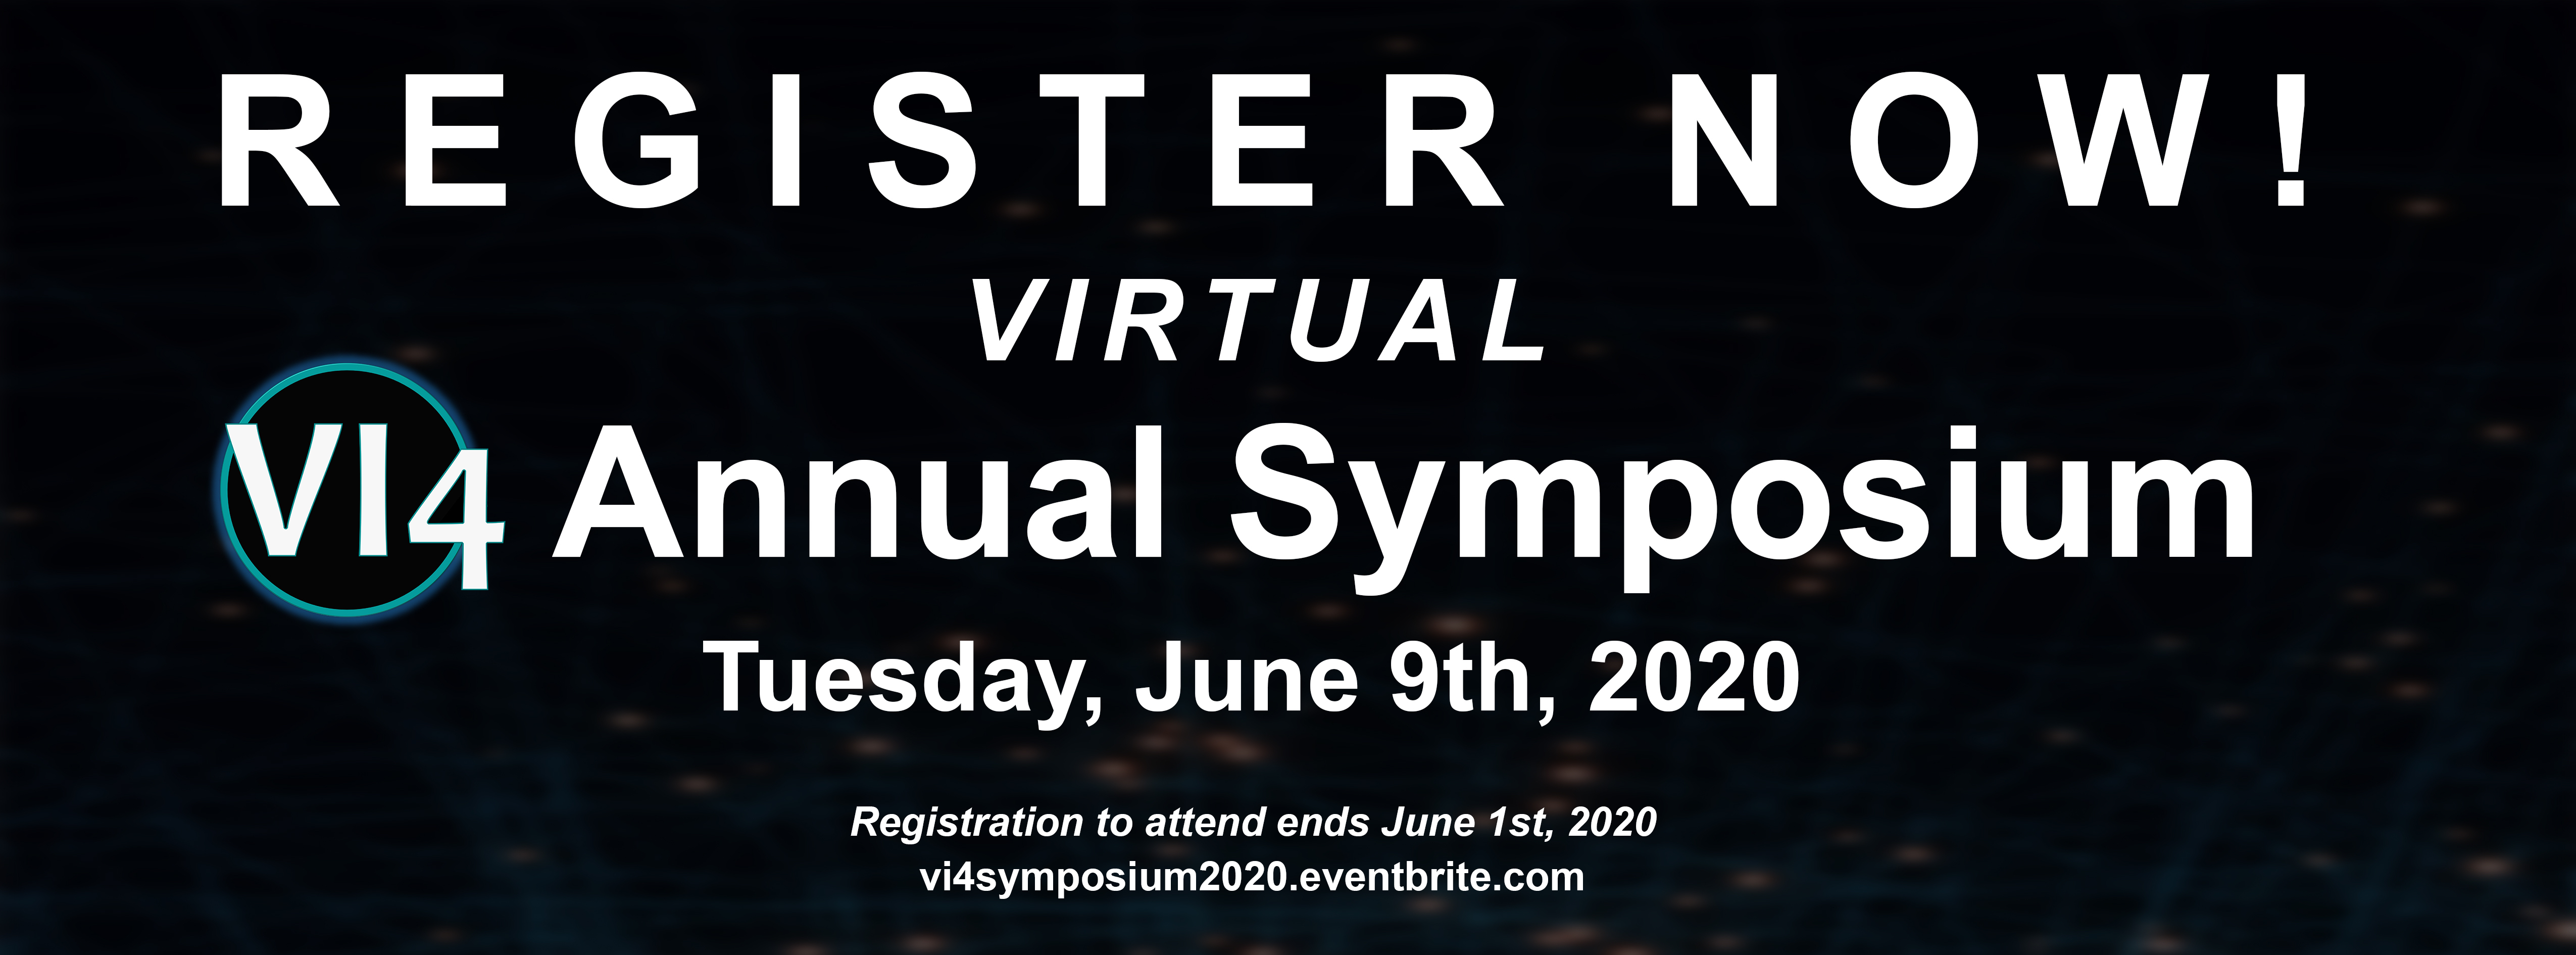 The VIRTUAL VI4 Annual Symposium is June 9th, 2020. Register now!